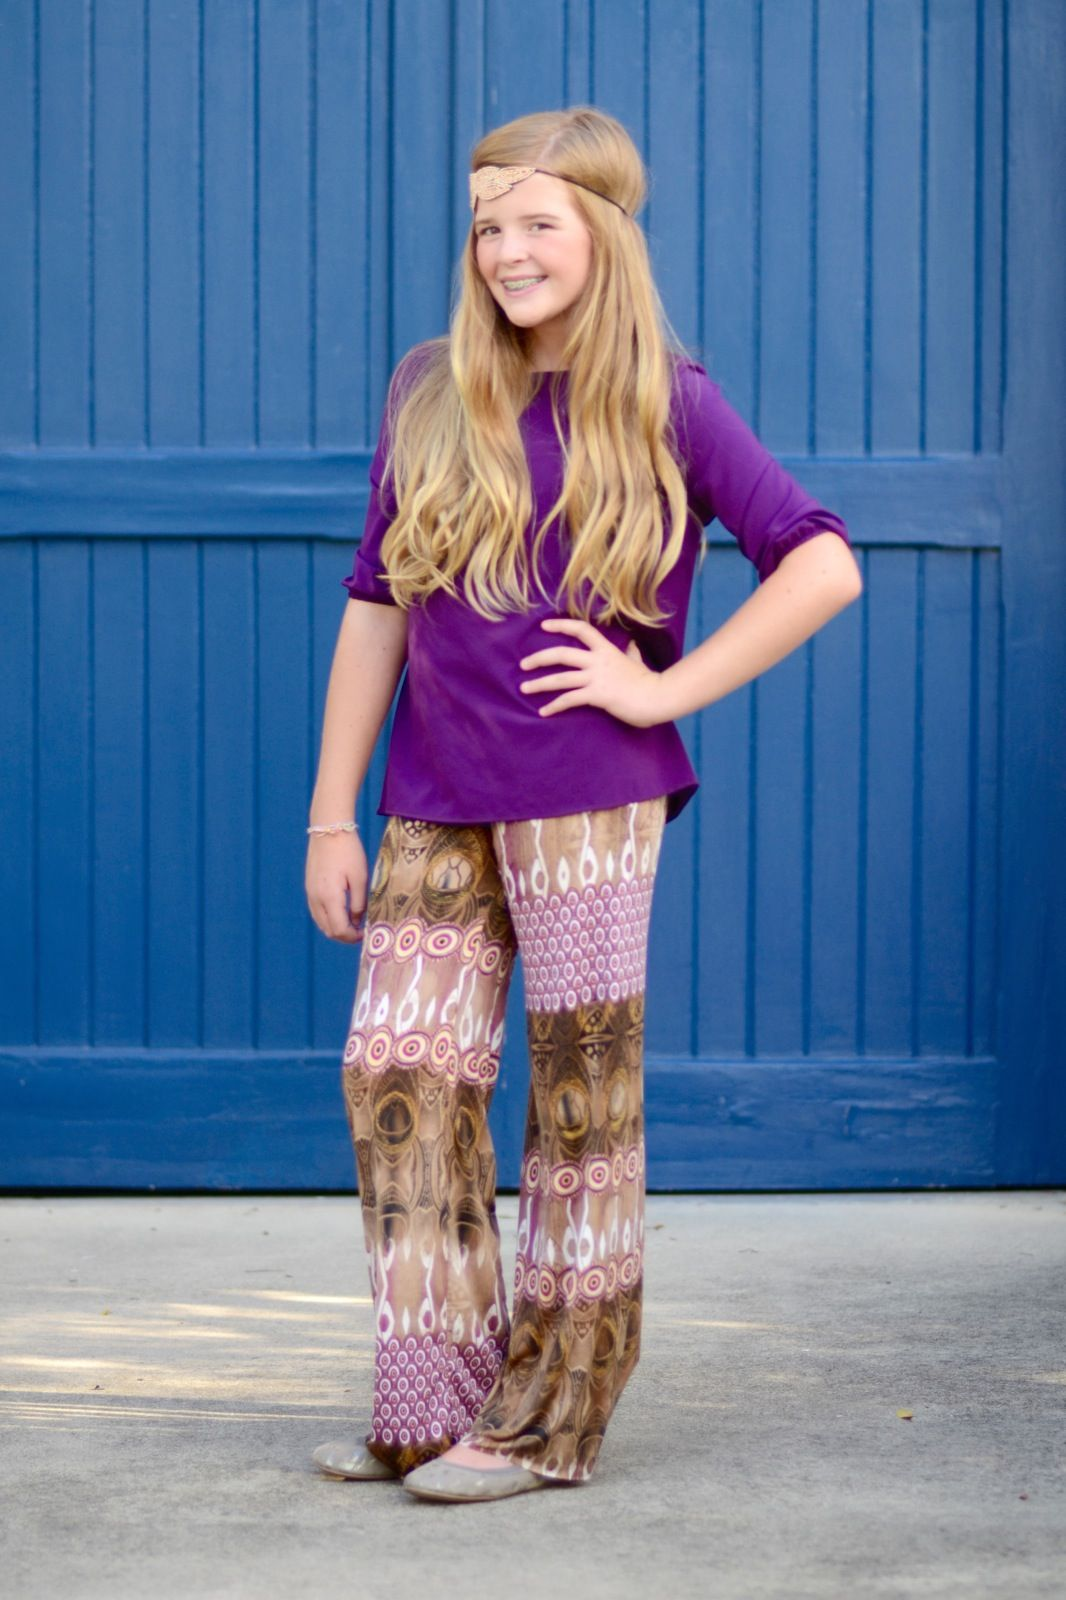 chan.ru preteen Find this Pin and more on Betwixt Tween and Teen Style.